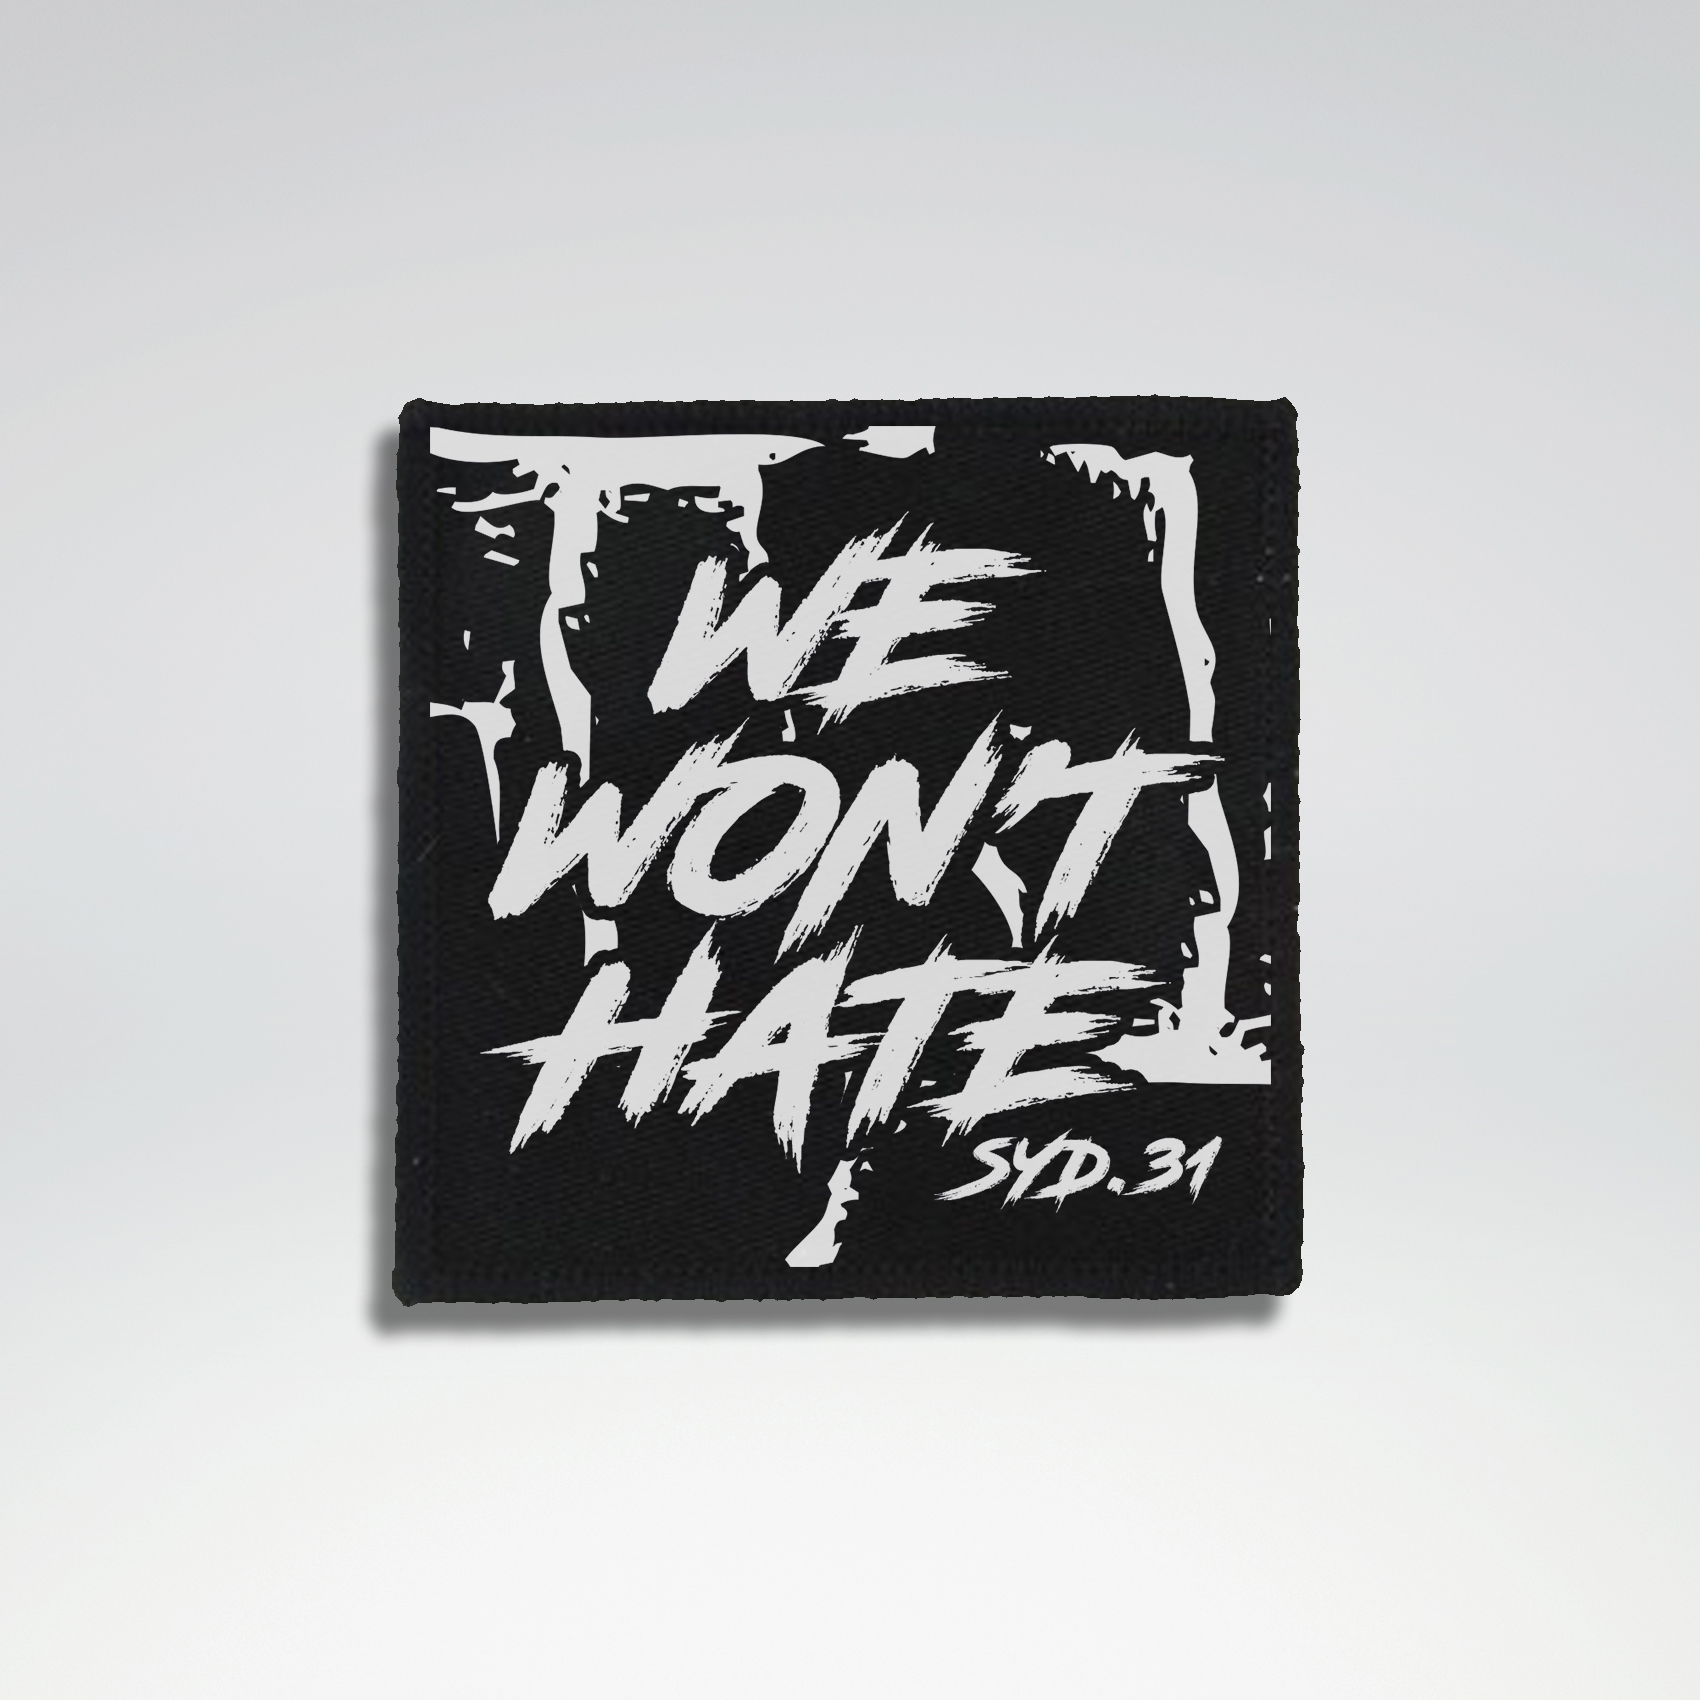 Syd.31 'We Won't Hate' Patch